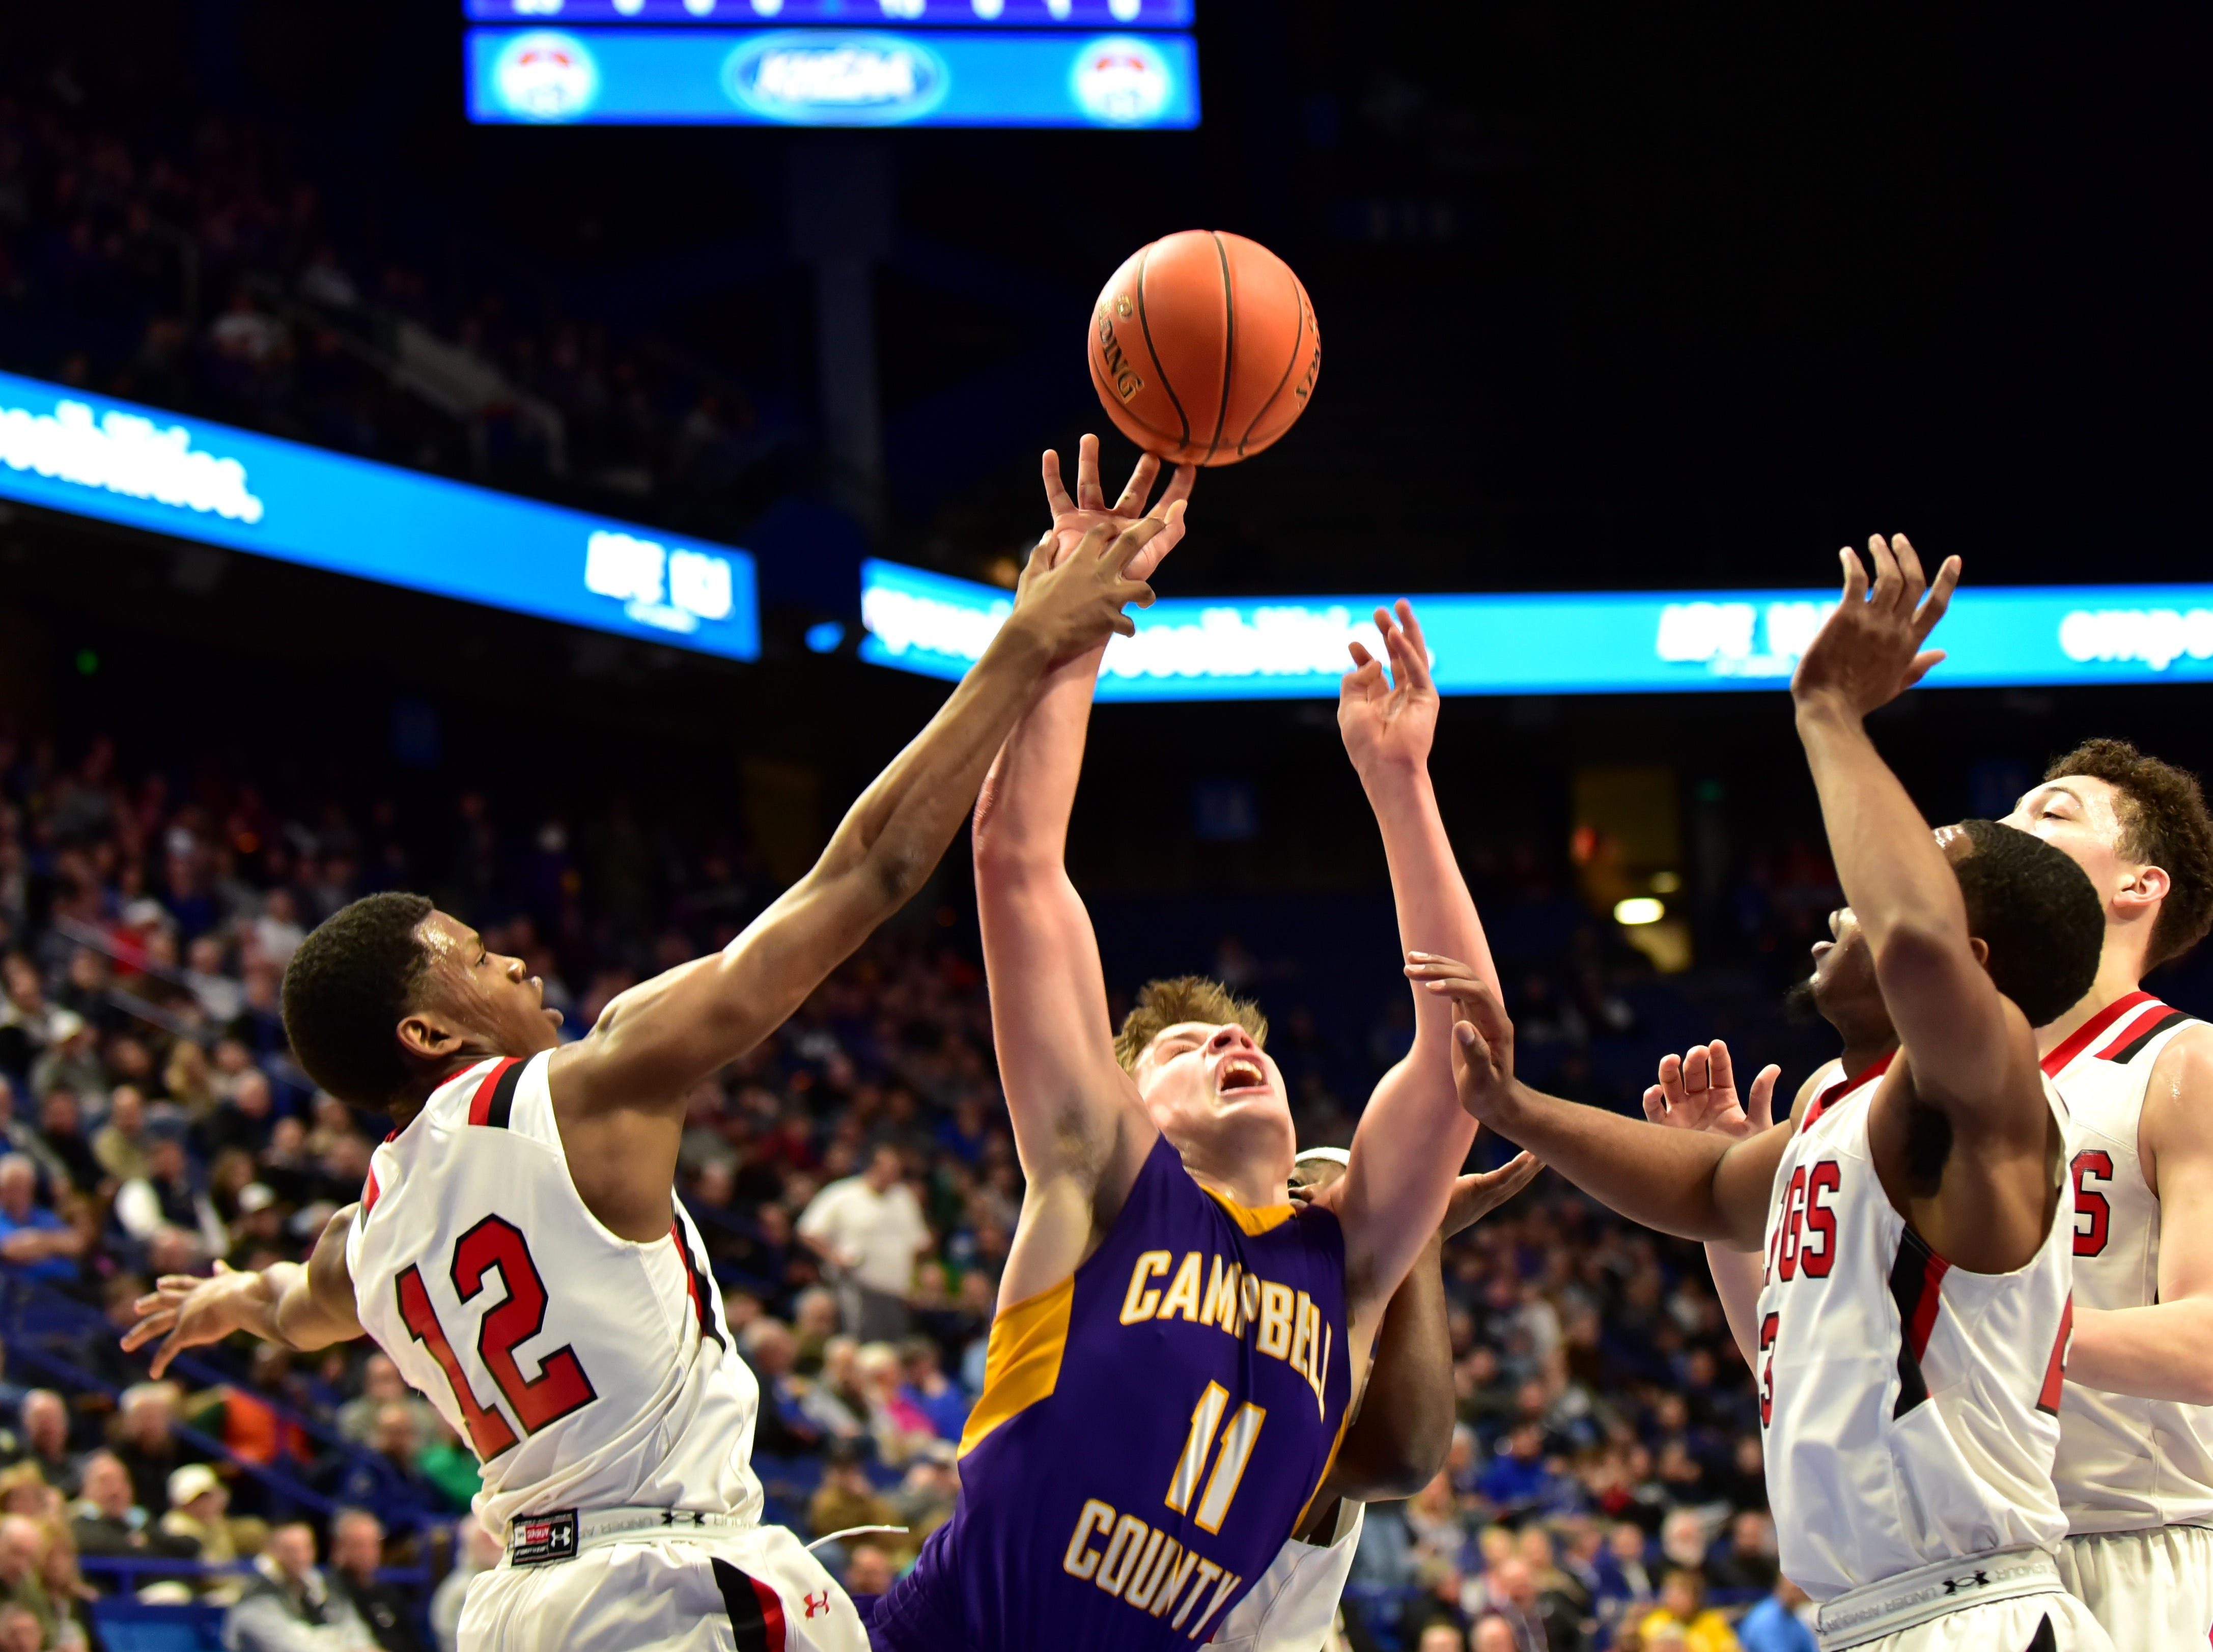 Reid Jolly (11) of Campbell County is fouled hard by the defense at the KHSAA Sweet 16 Tournament at Rupp Arena in Lexington, KY, March 6, 2019